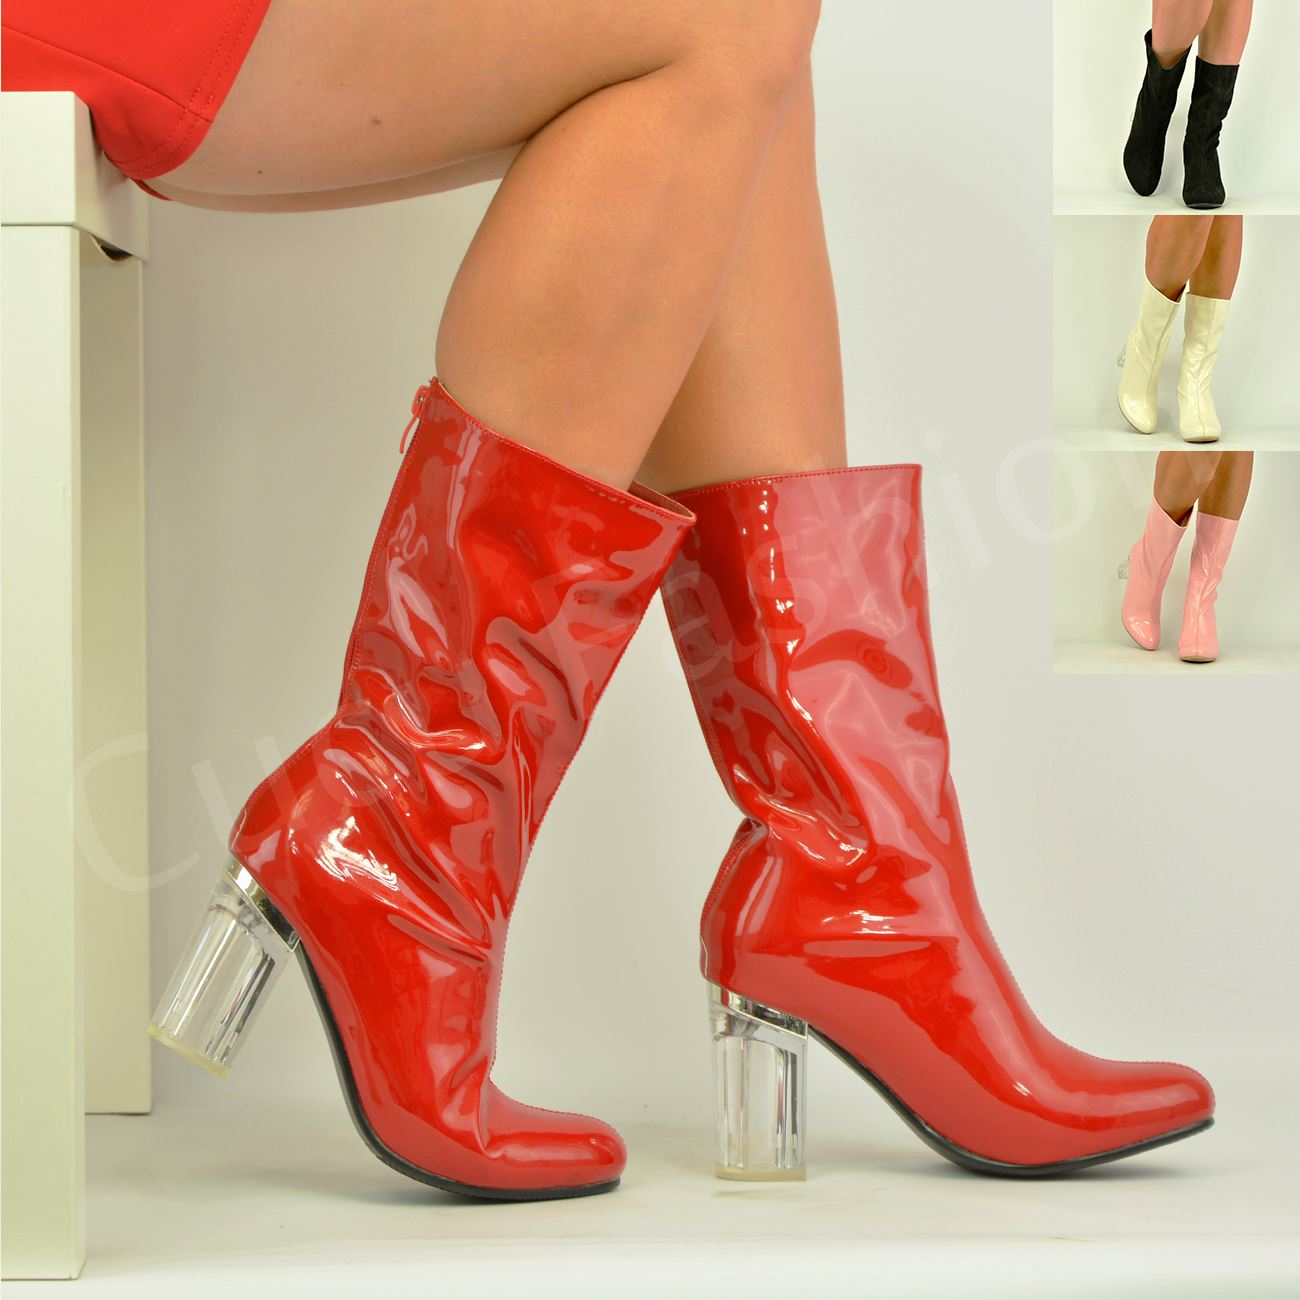 a3099bbe0e New Womens Ladies Clear Perspex Block Heel Calf Ankle Boots Zip ...